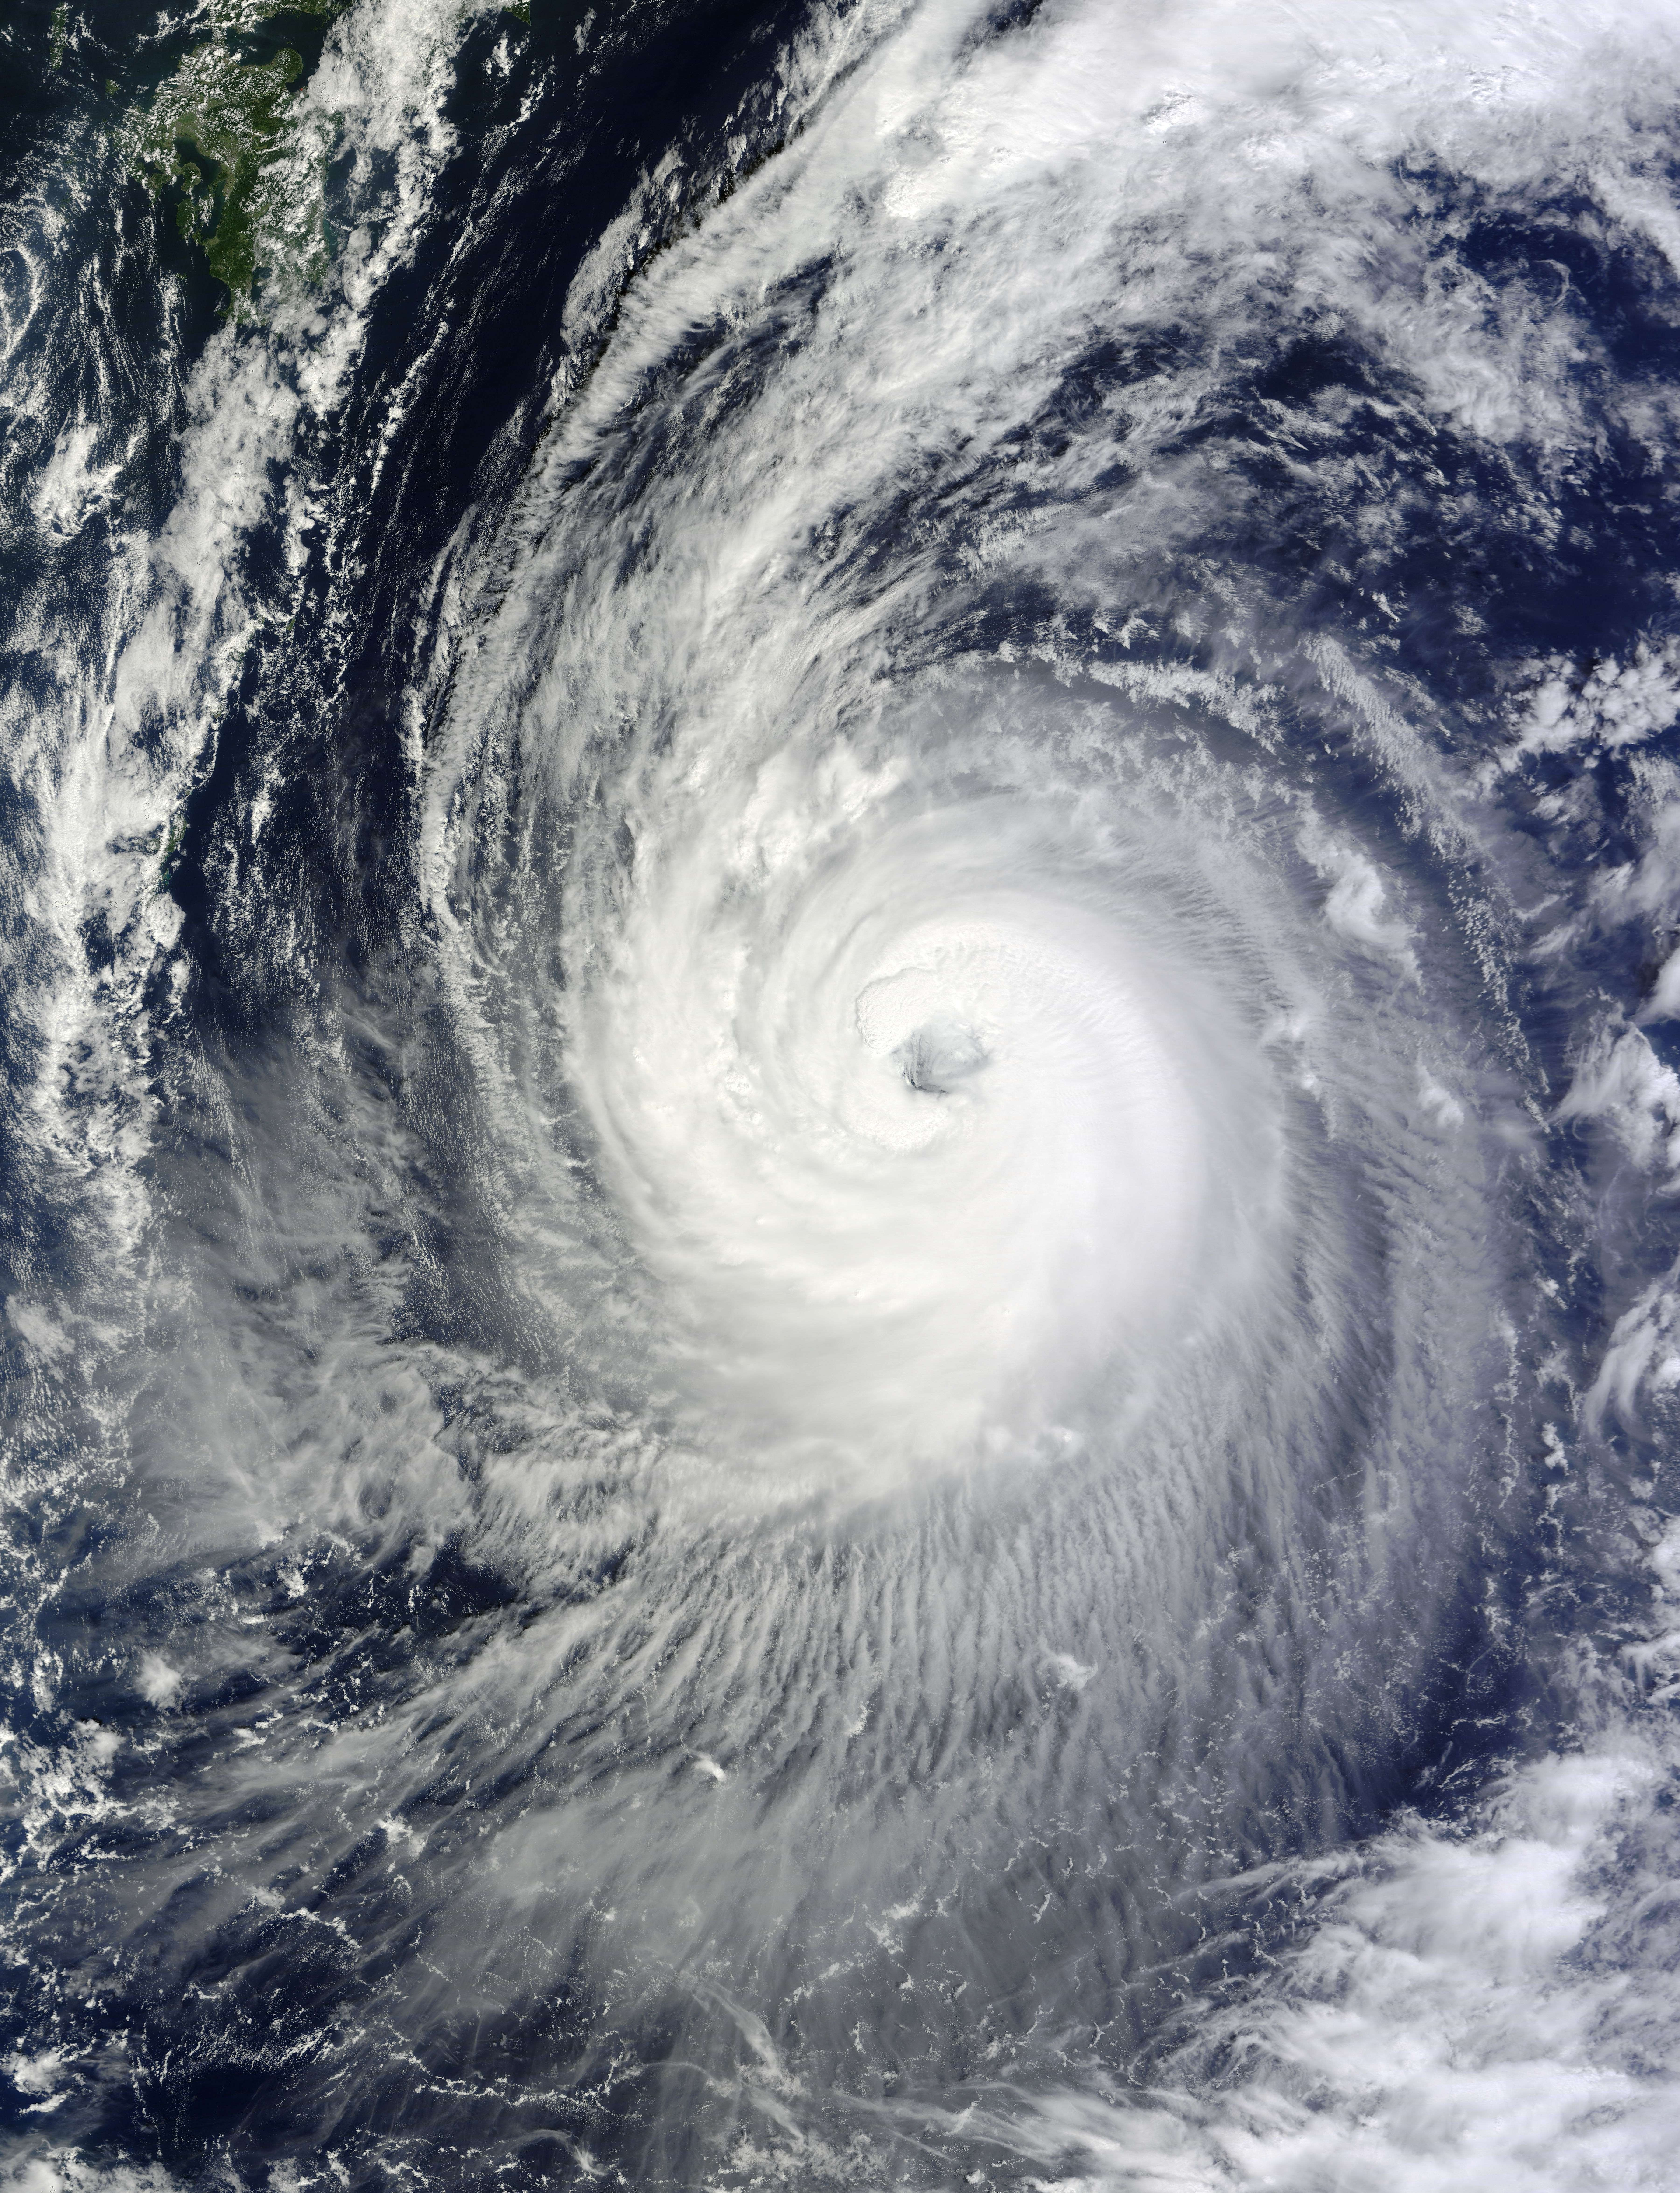 This NASA satellite image shows Typhoon Phanfone in the western Pacific Ocean on Oct. 3, 2014.